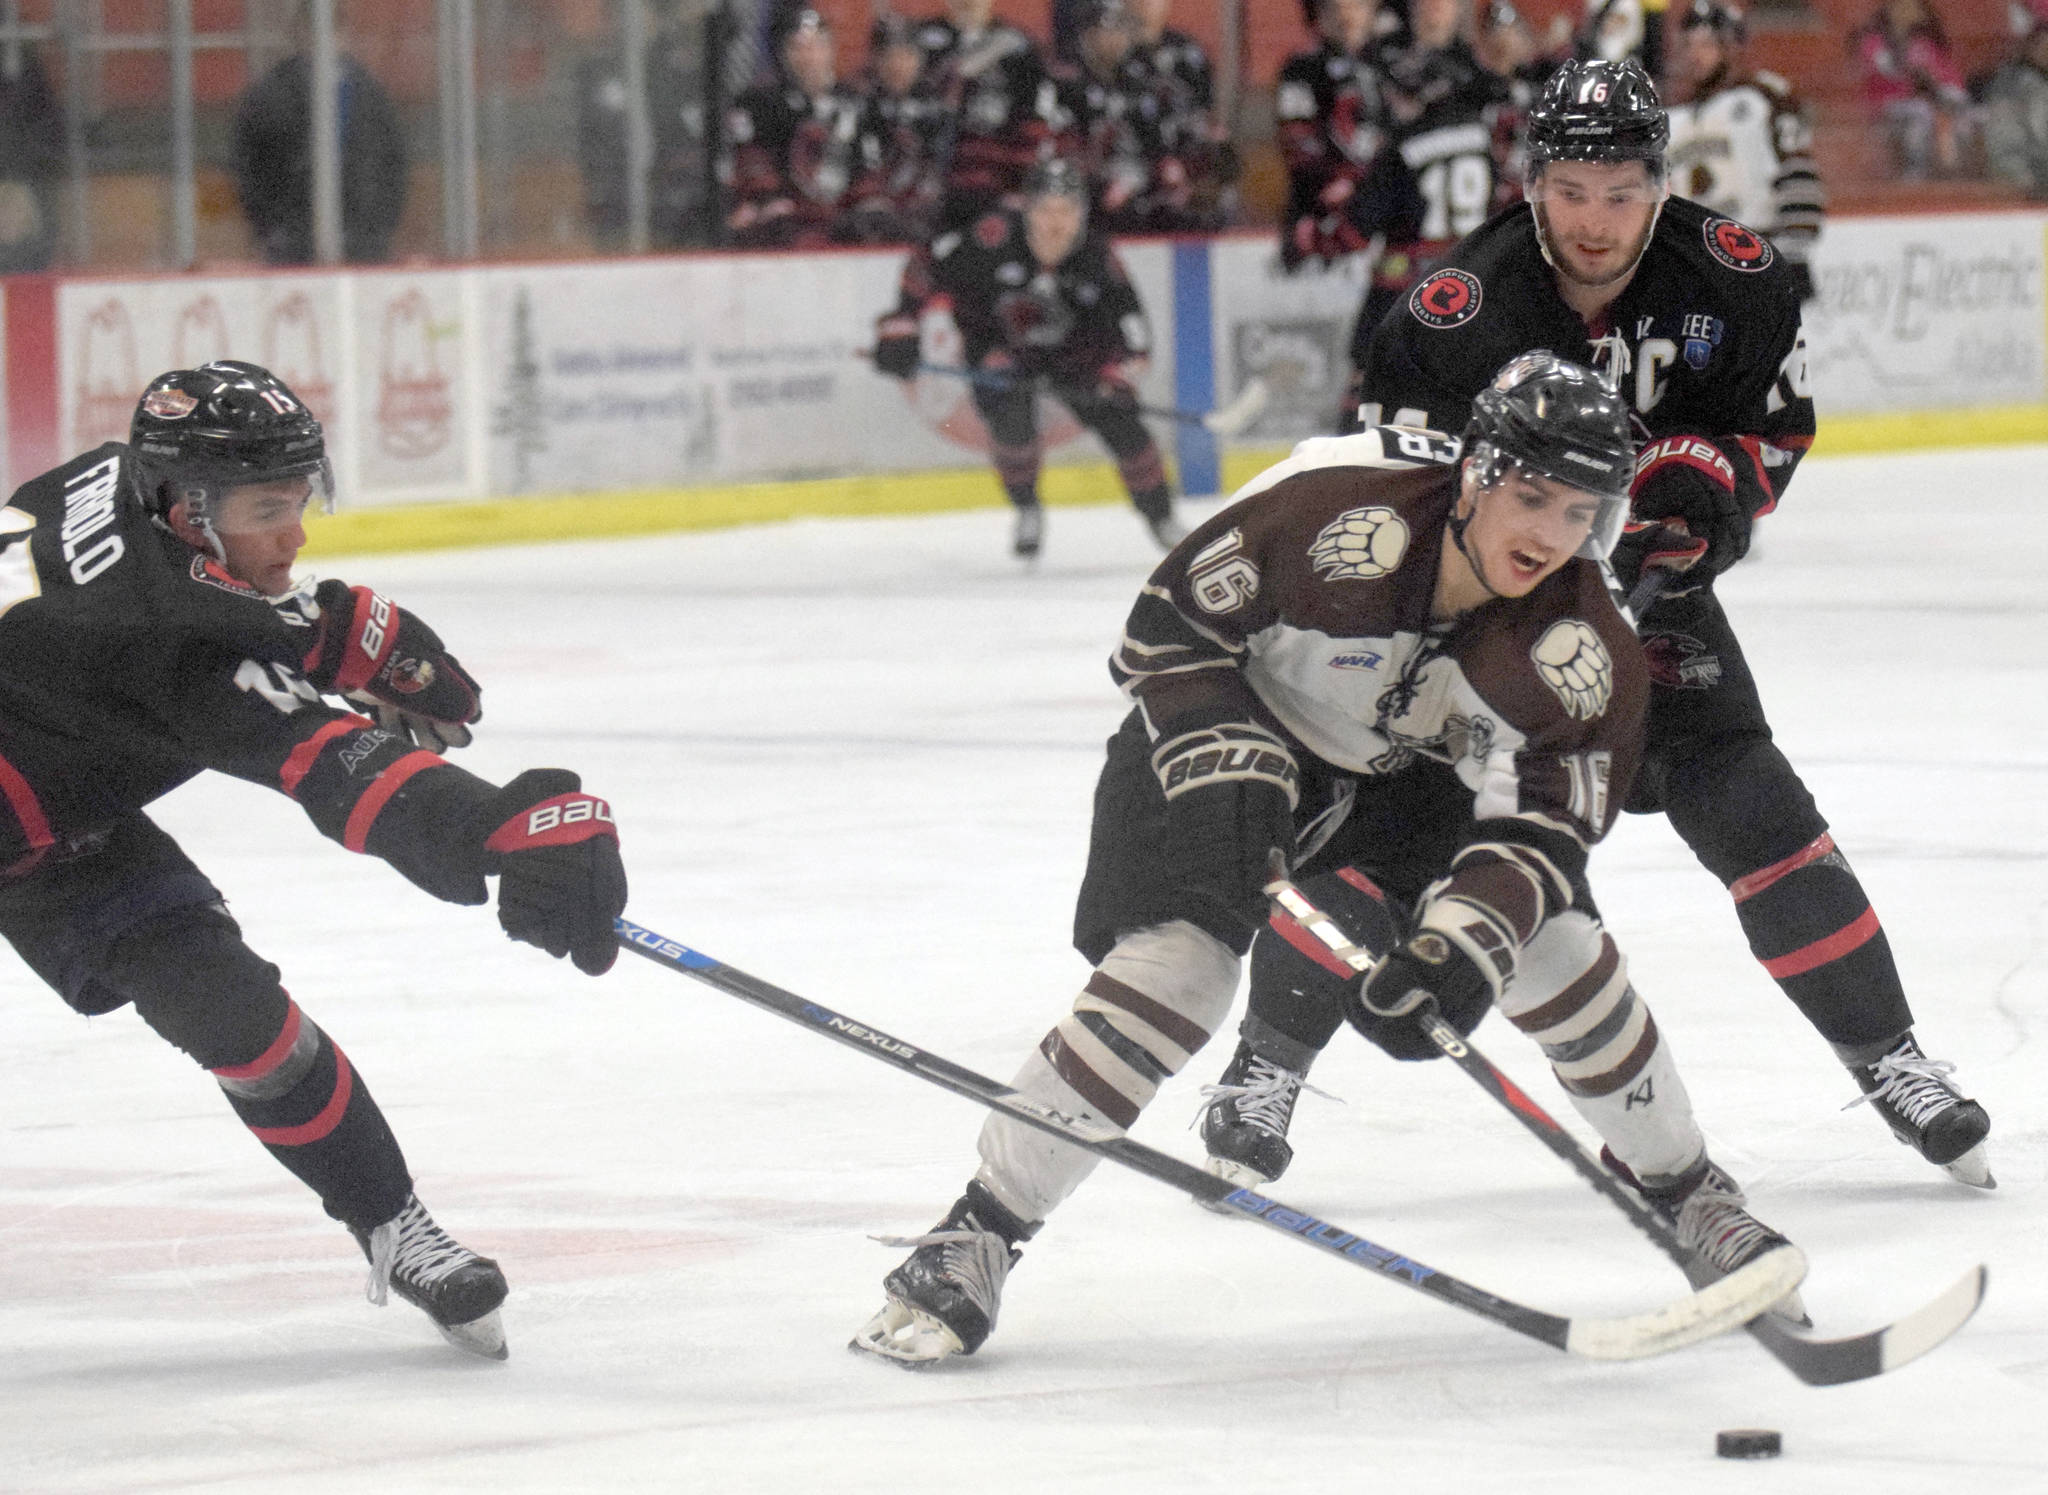 Brown Bears forward Andy Walker carries the puck between Corpus Christi's Anthony Firriolo and Kyle Moore on Friday, Feb. 8, 2019, at the Soldotna Regional Sports Complex. (Photo by Jeff Helminiak/Peninsula Clarion)